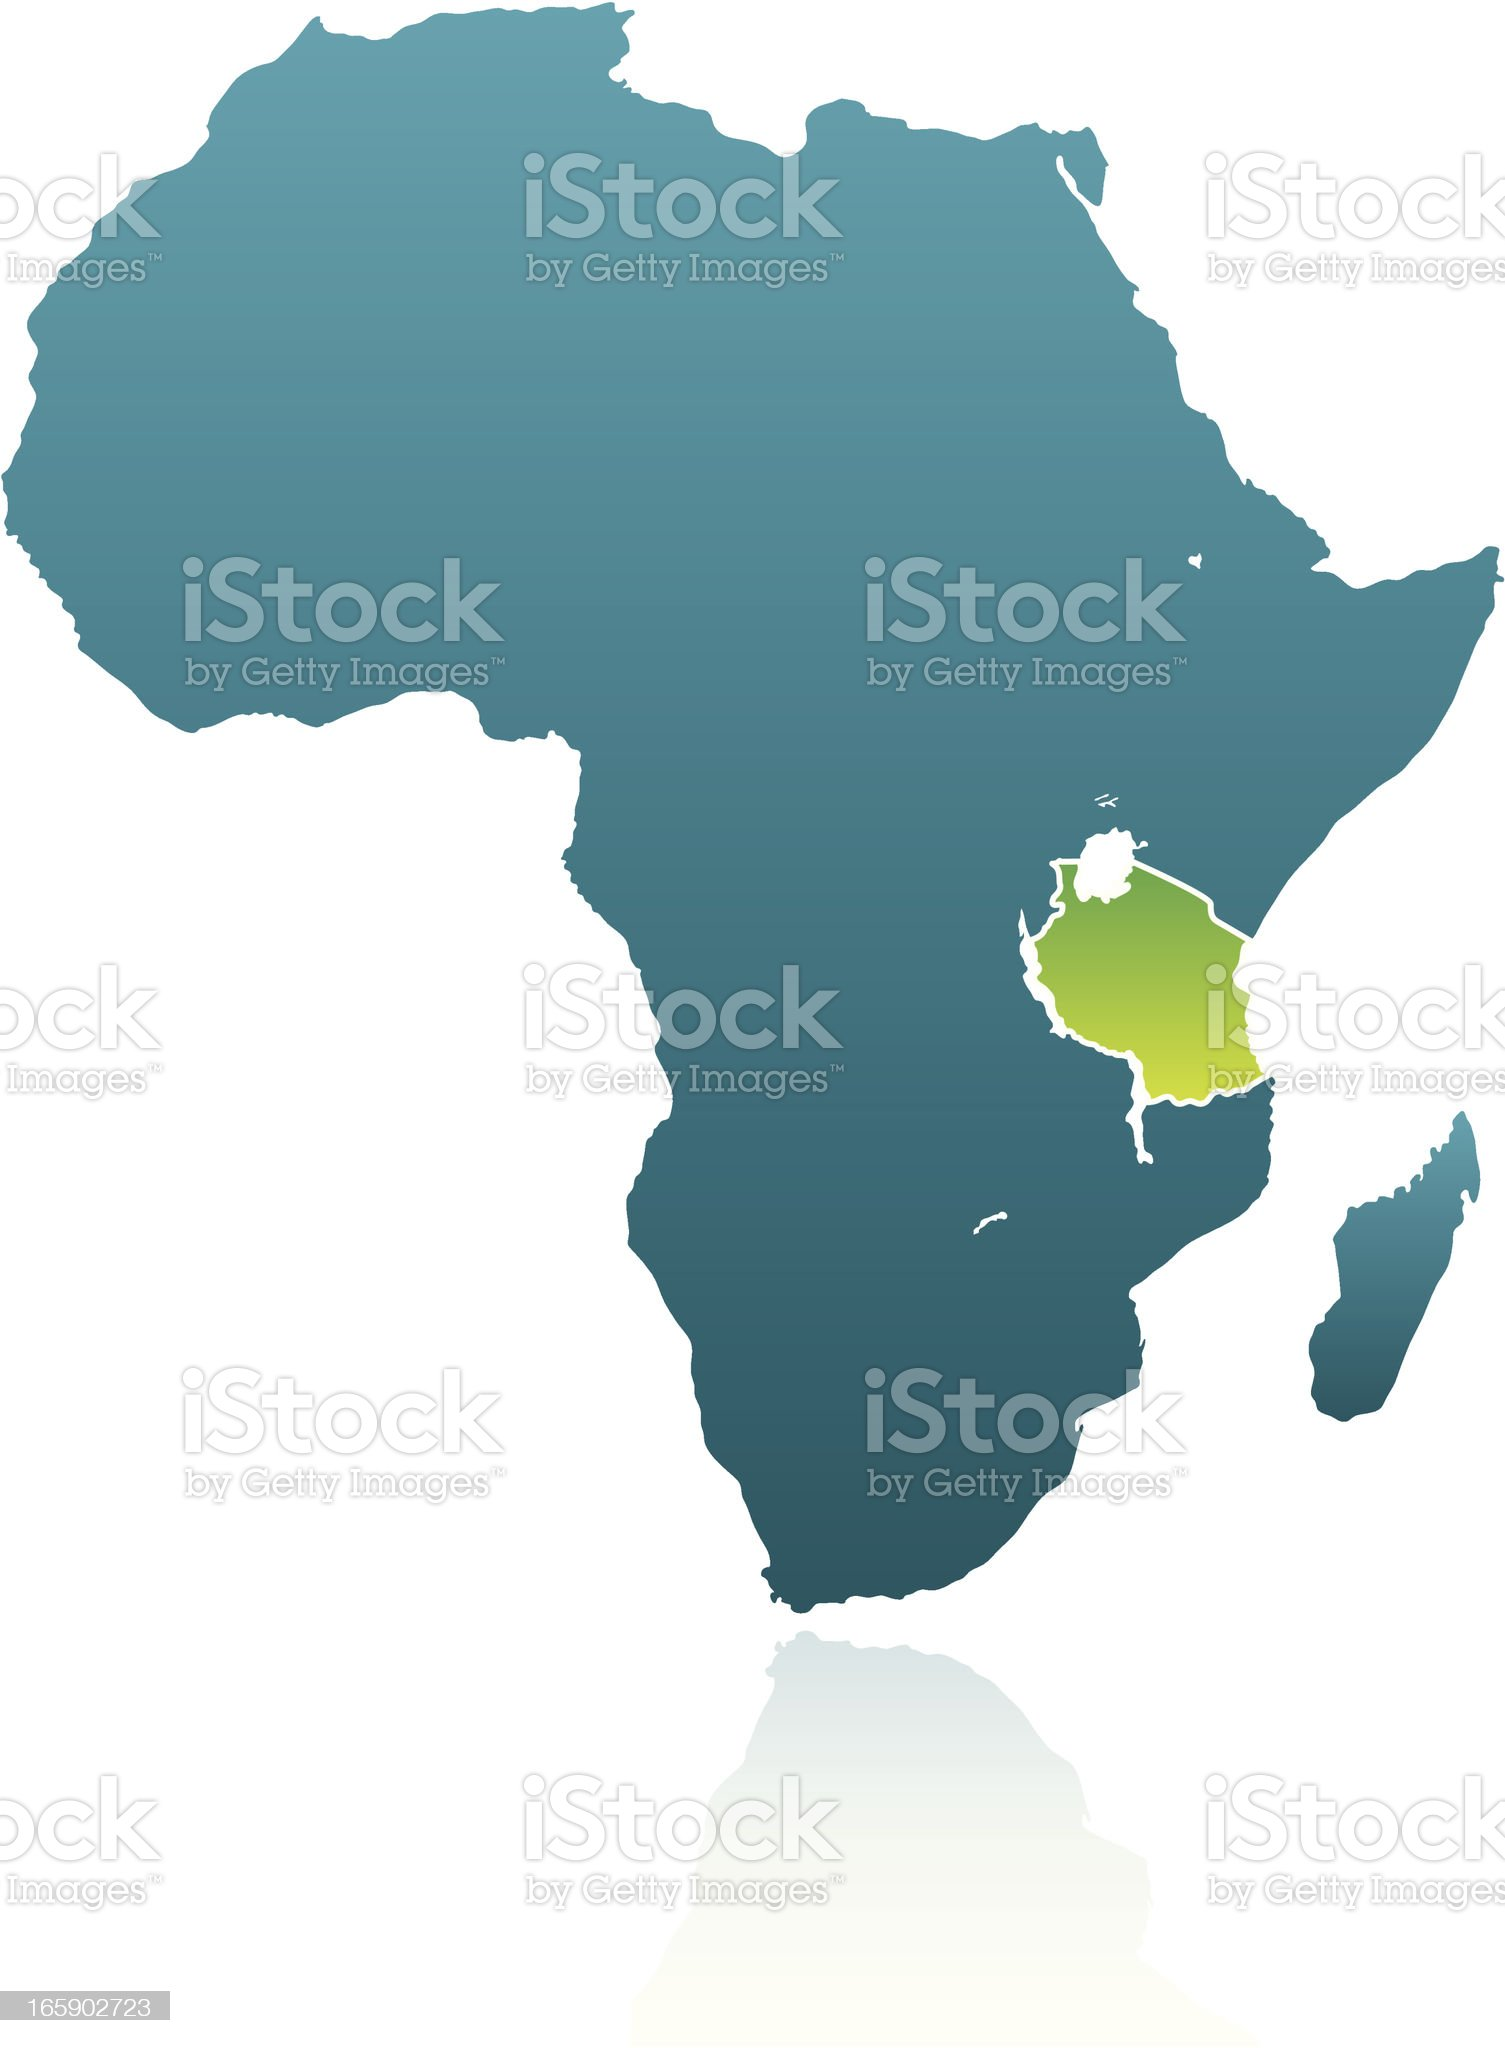 African Countries: Tanzania royalty-free stock vector art